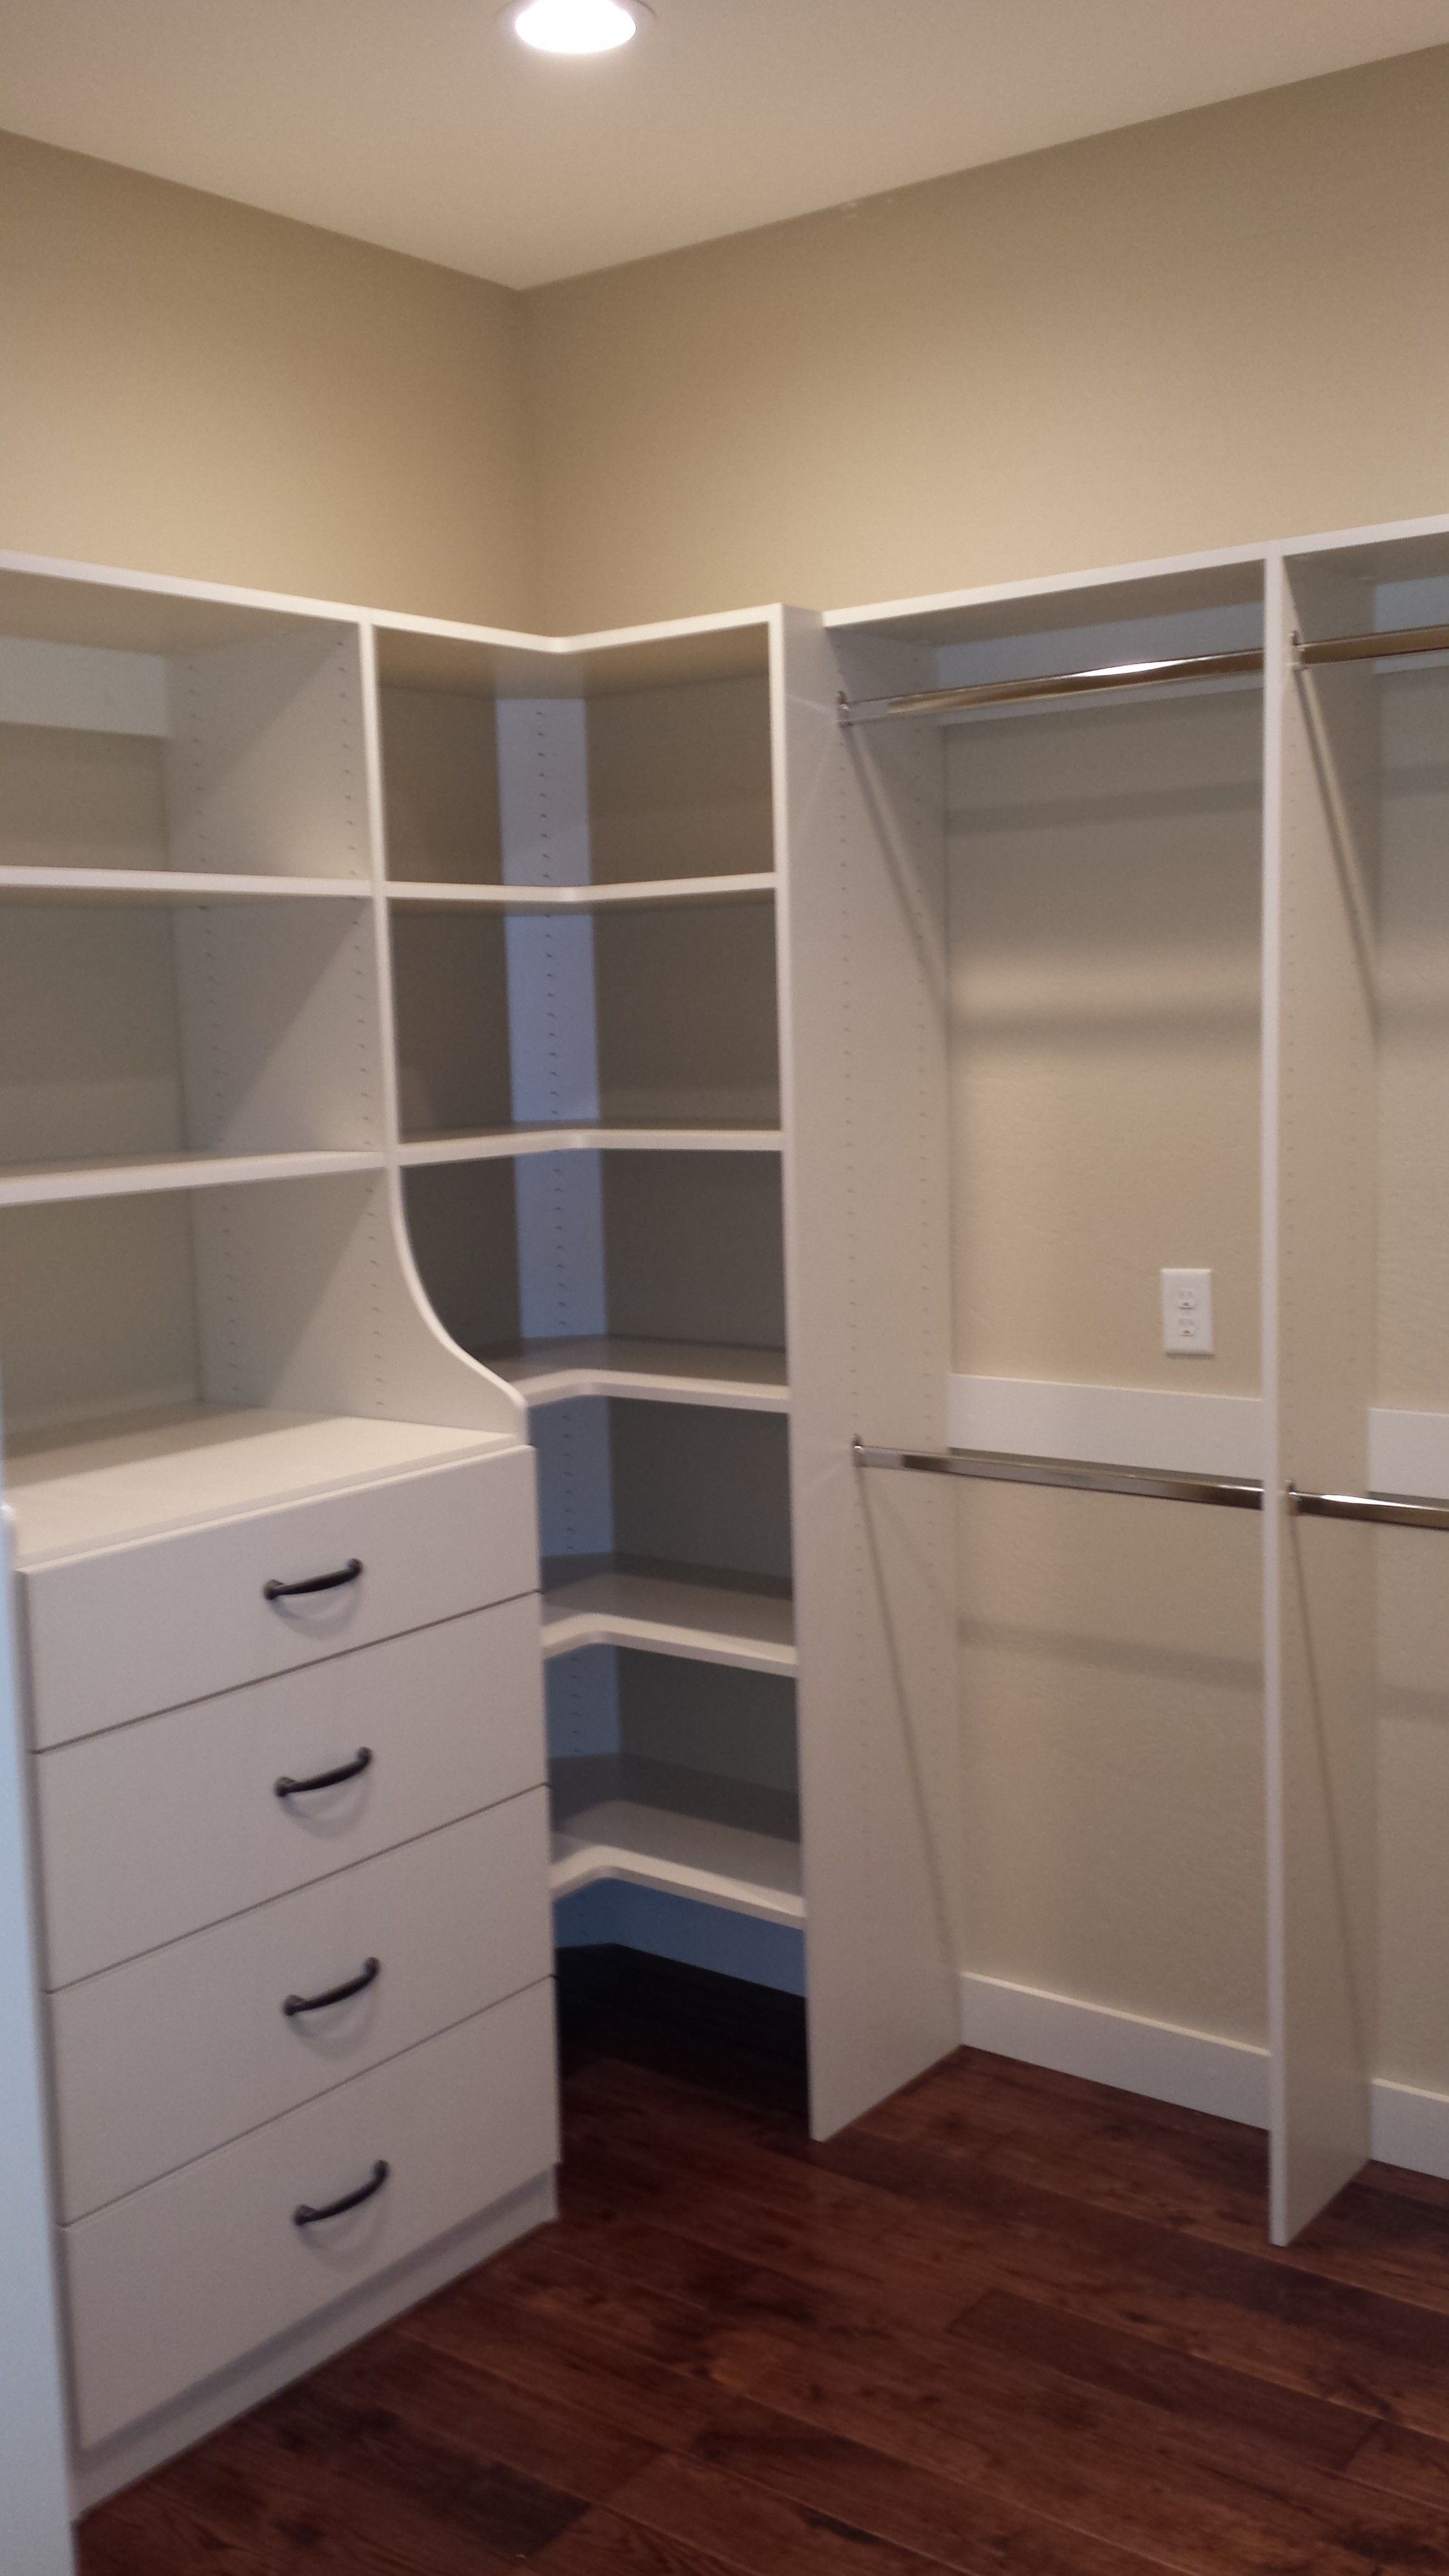 Closet shelving units modern space saving storage ideas closet organizers home organization the also has corner veenered particleboard shelves organizers